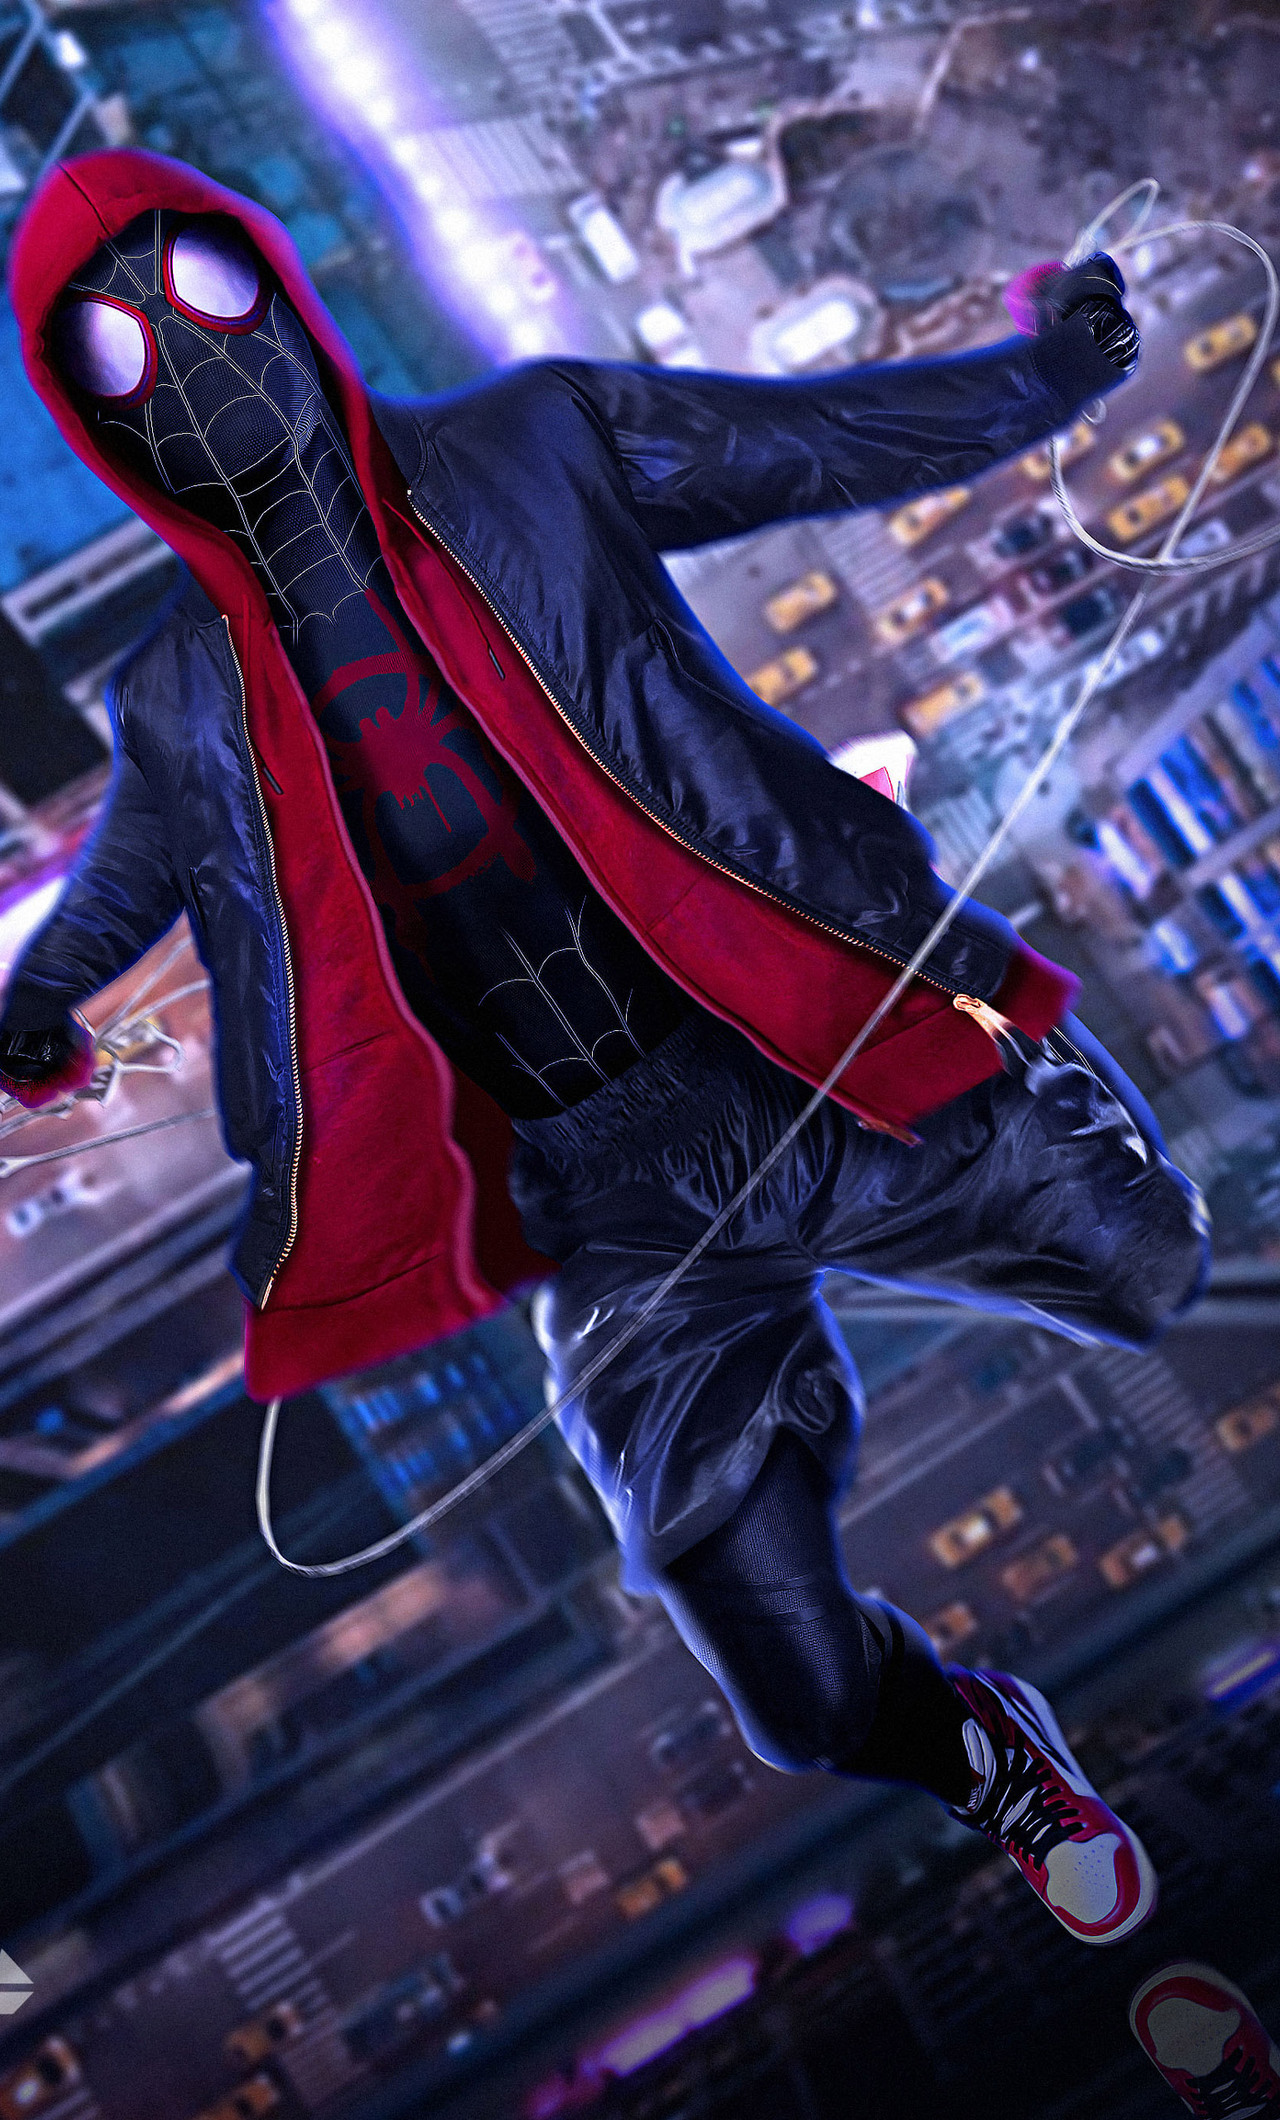 1280x2120 Spiderman Into The Spider Verse Movie Cosplay Iphone 6 Hd